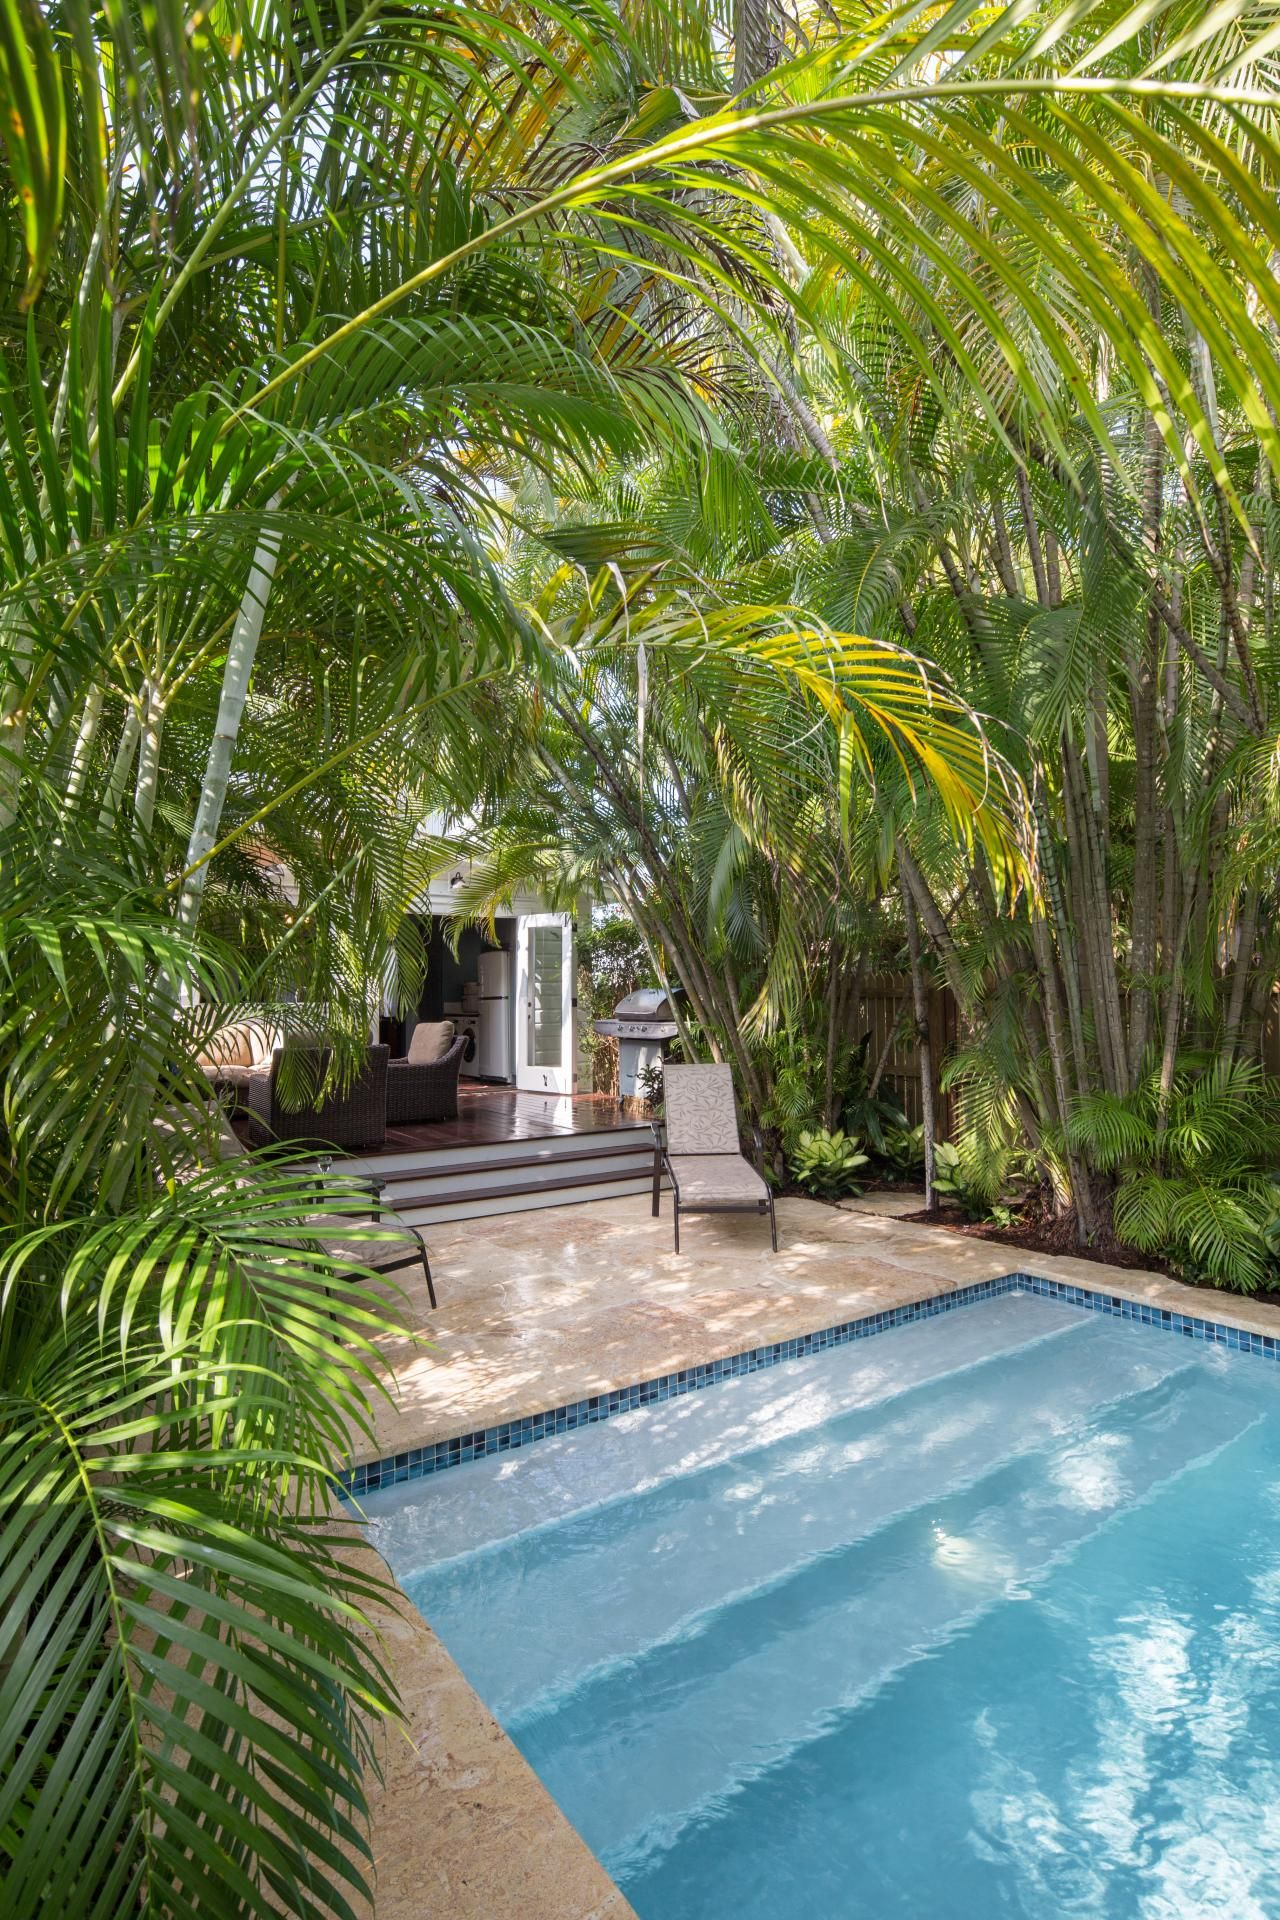 Backyard Oasis is Tropical Relaxing HGTV